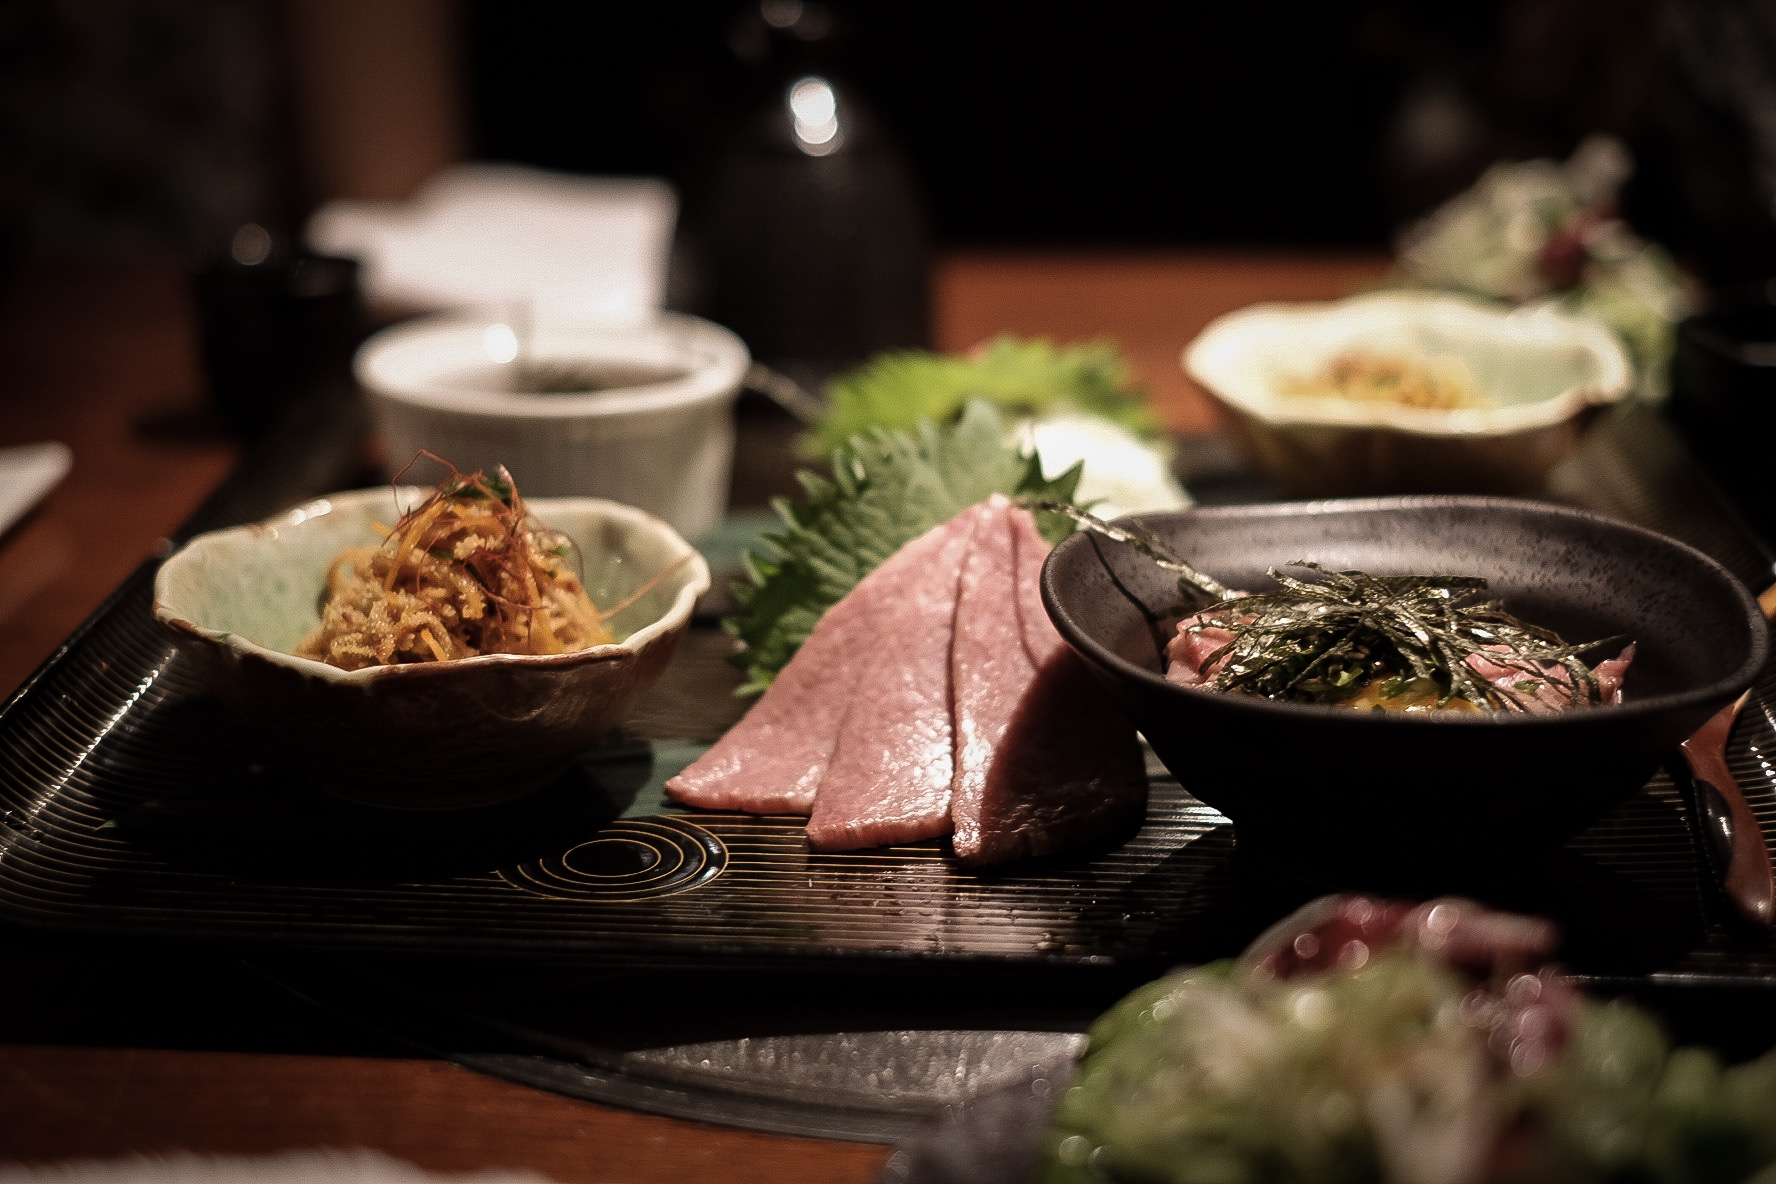 yoroniku - one of the best meals入口即化的牛肉